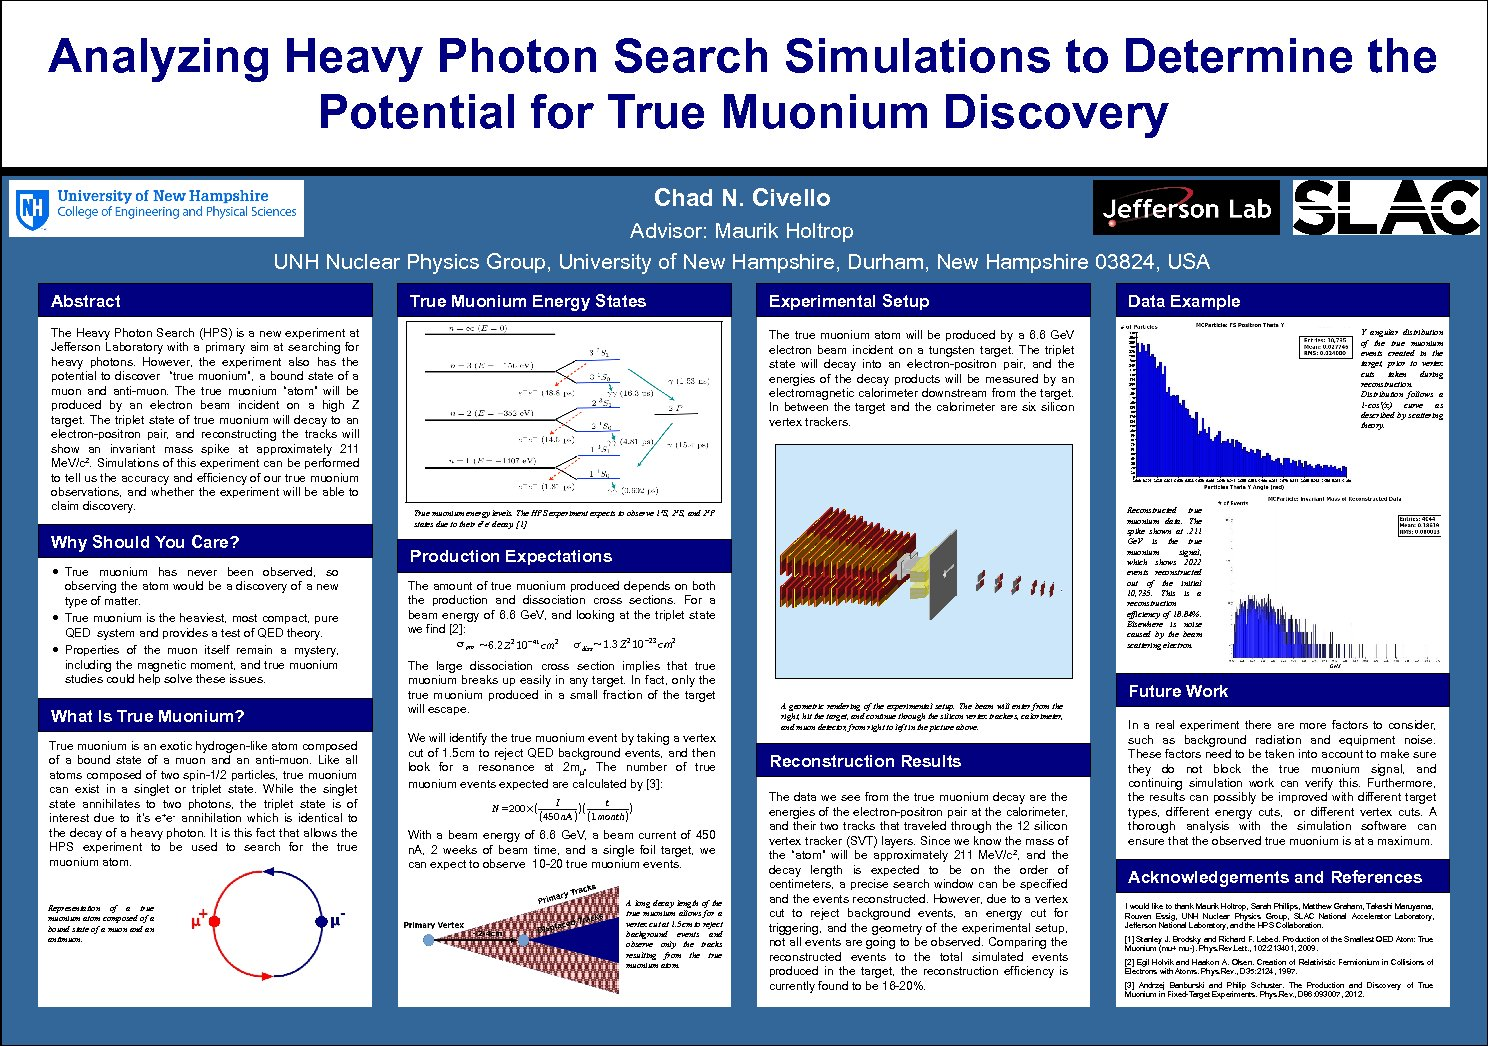 Analyzing Heavy Photon Search Simulations To Determine The Potential For True Muonium Discovery by cng8